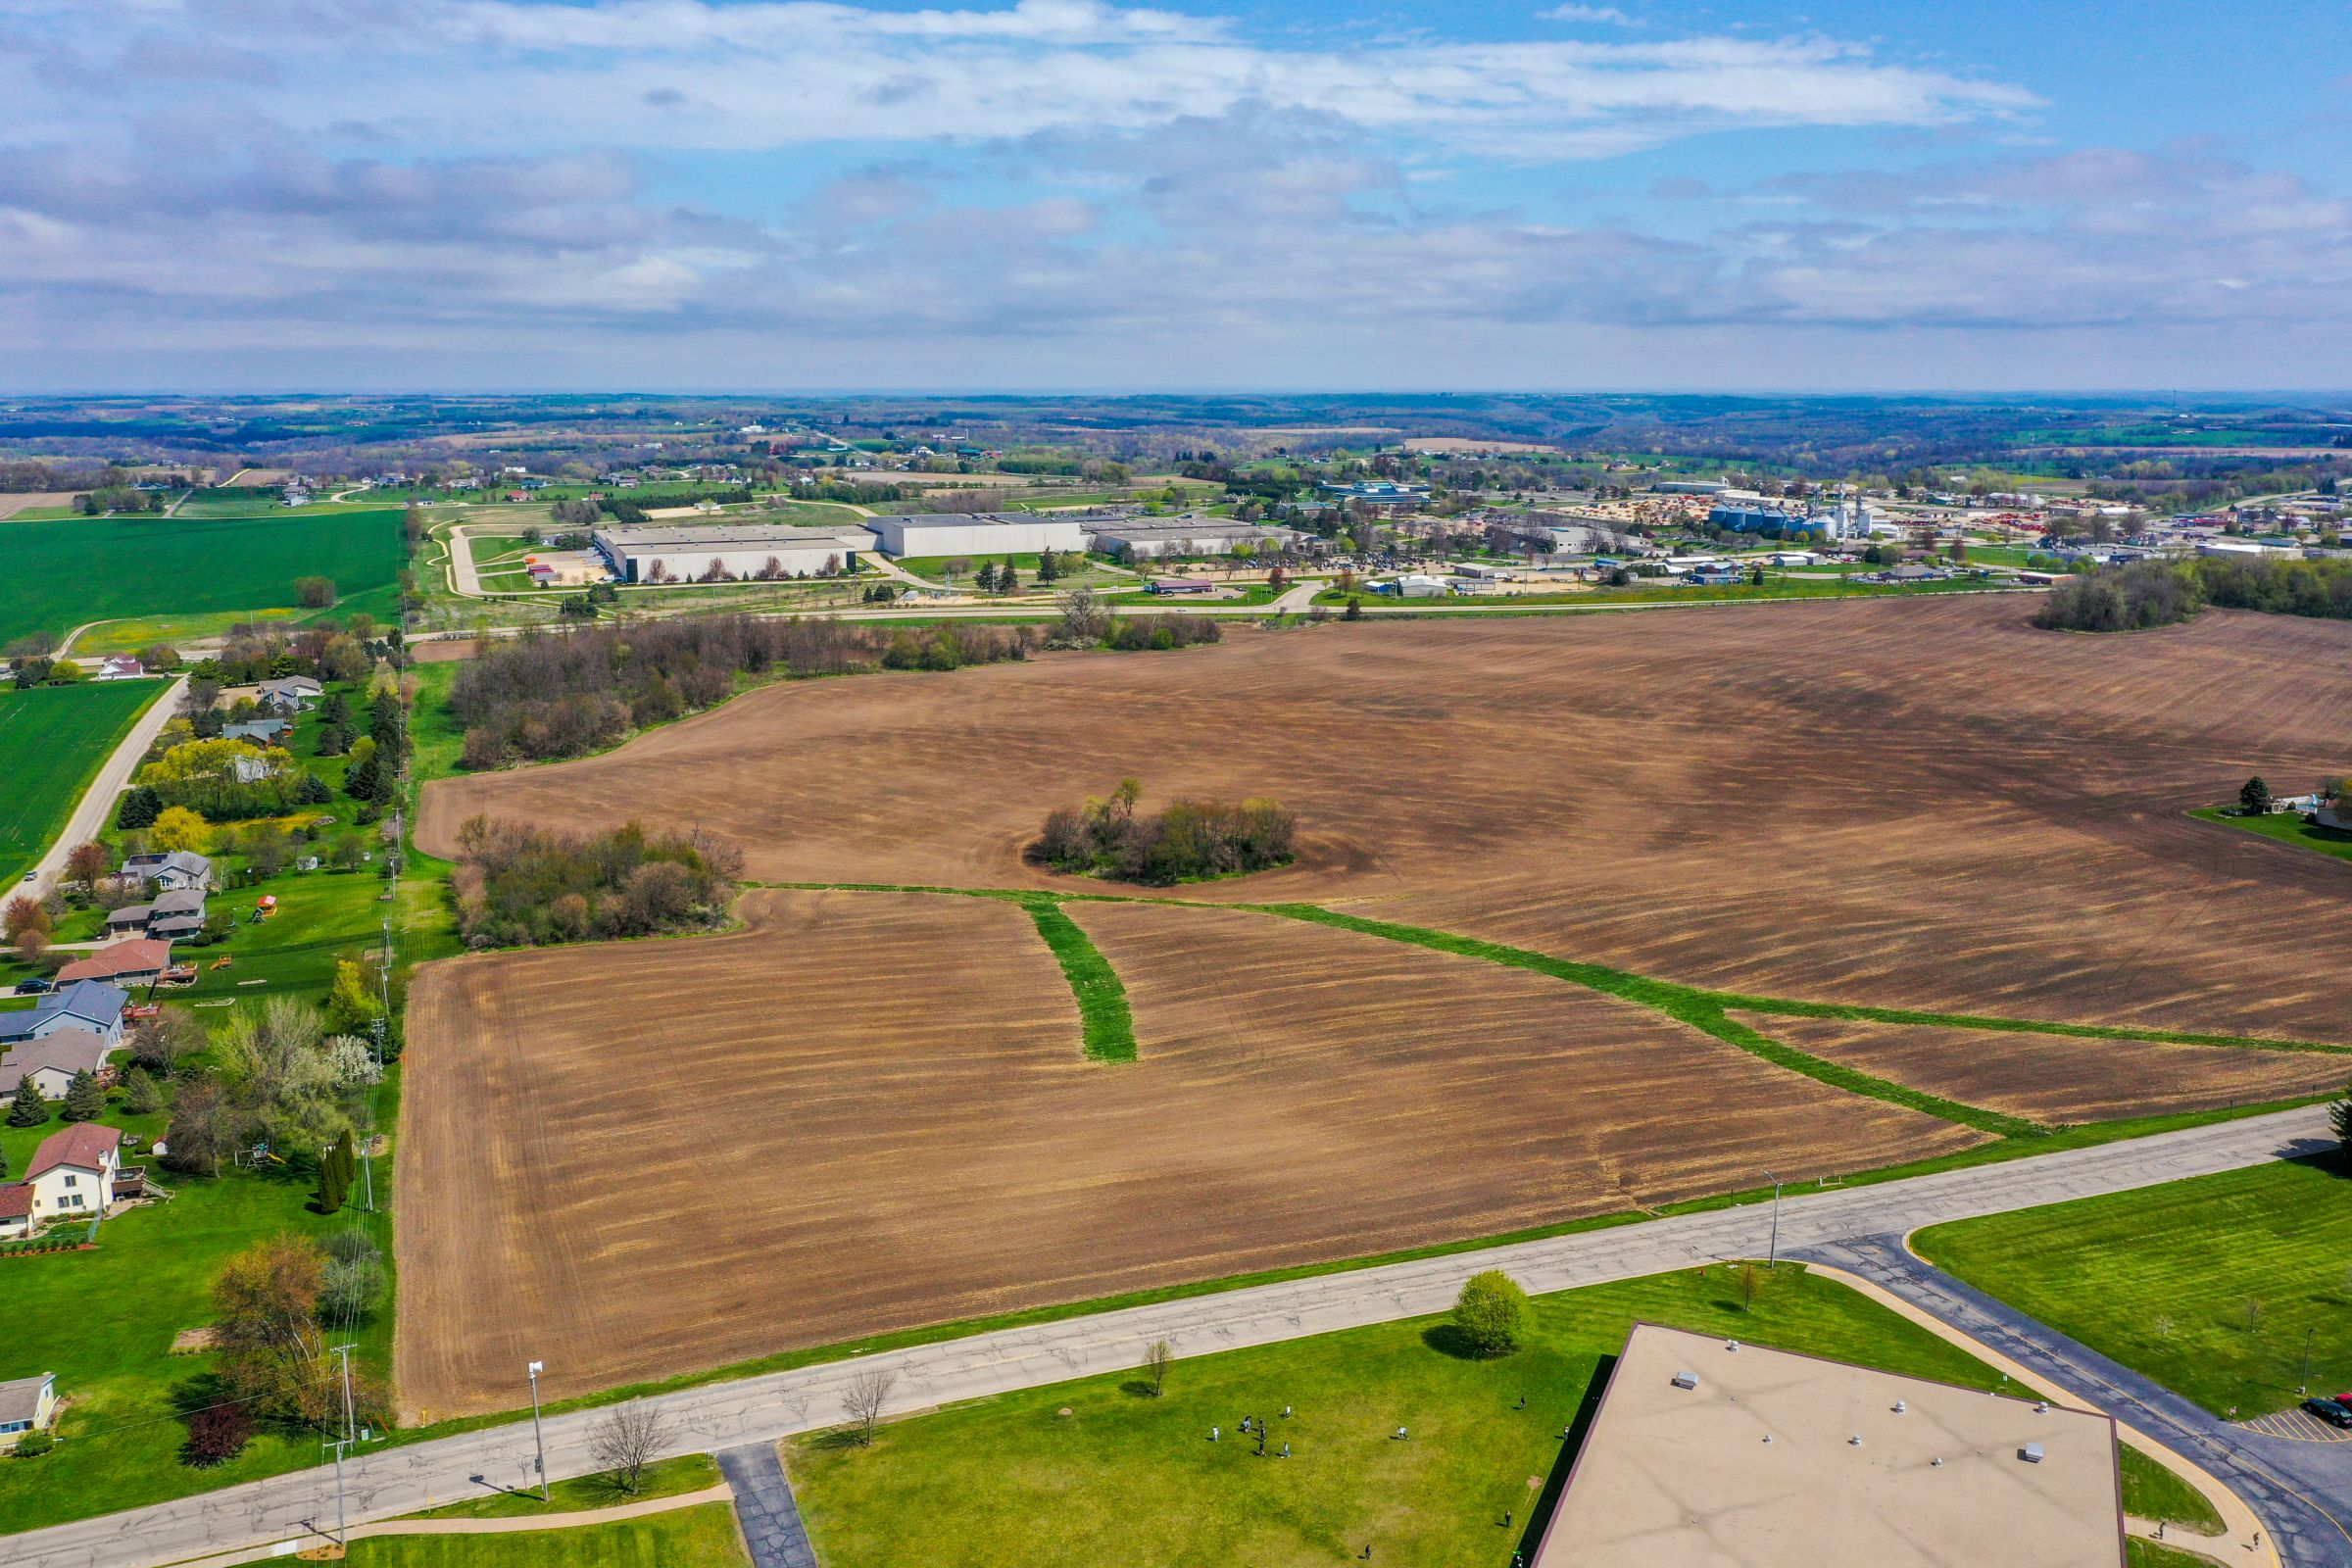 development-land-commercial-iowa-county-wisconsin-152-acres-listing-number-15474-2-2021-05-18-160118.jpg